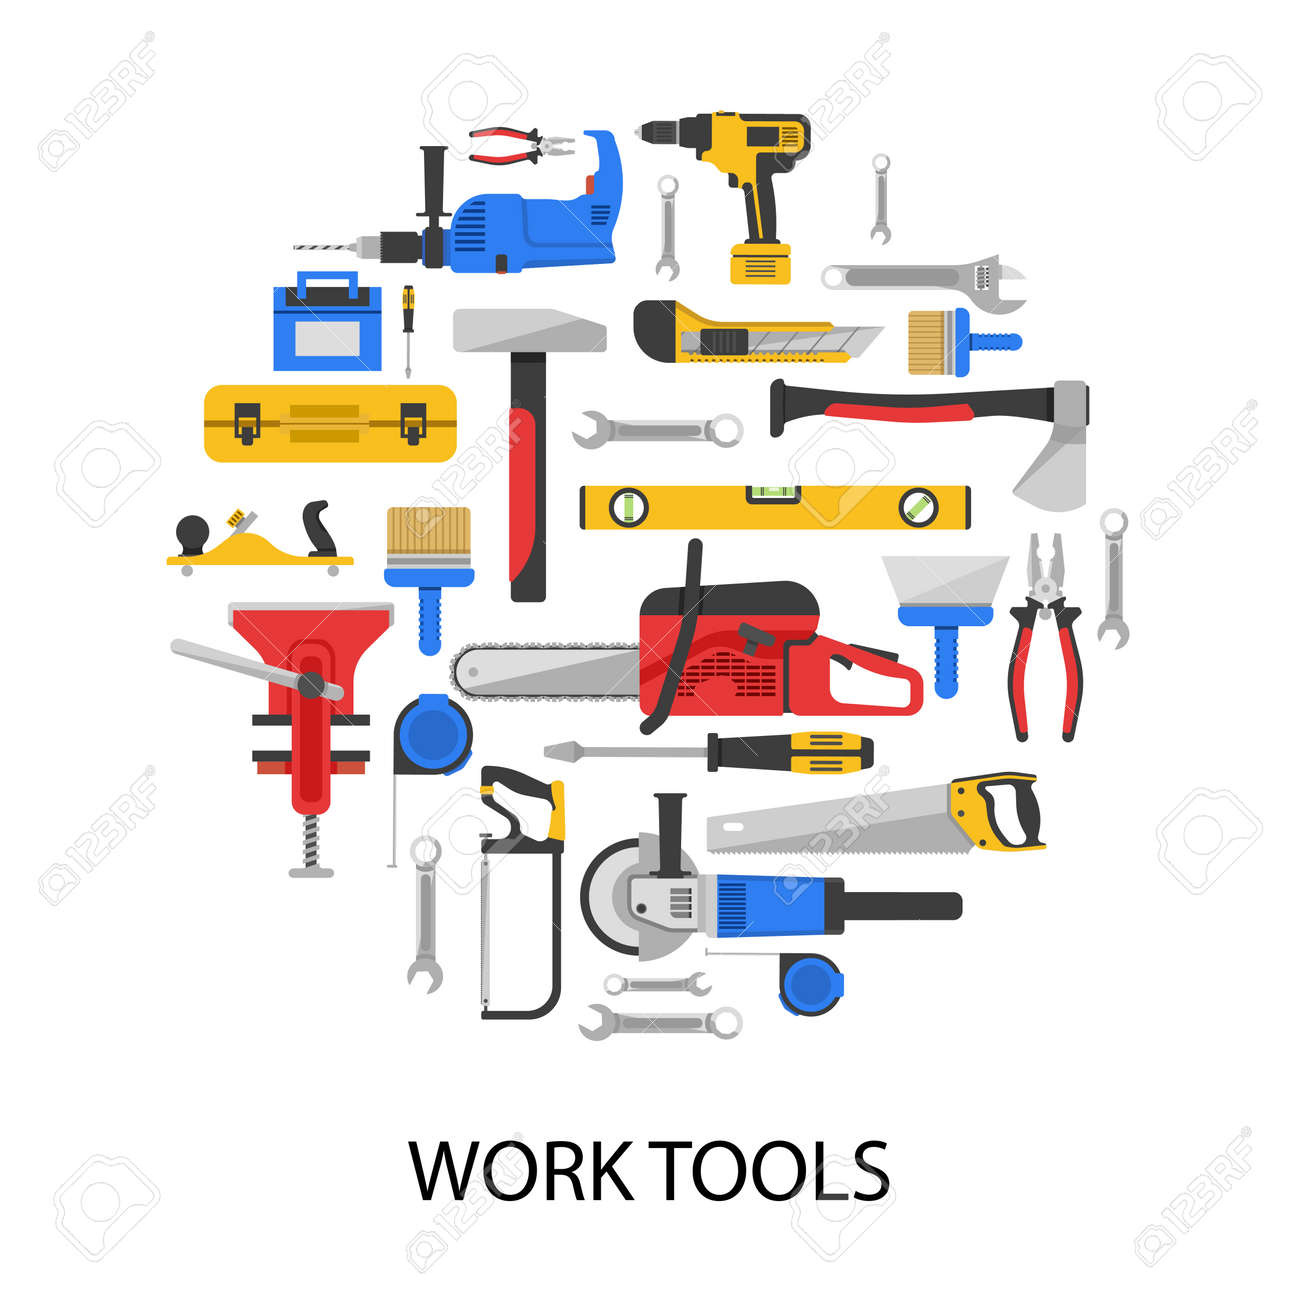 Work tools set in round shape with saws drills wrenches vice axe pliers grinder isolated vector illustration - 166645179